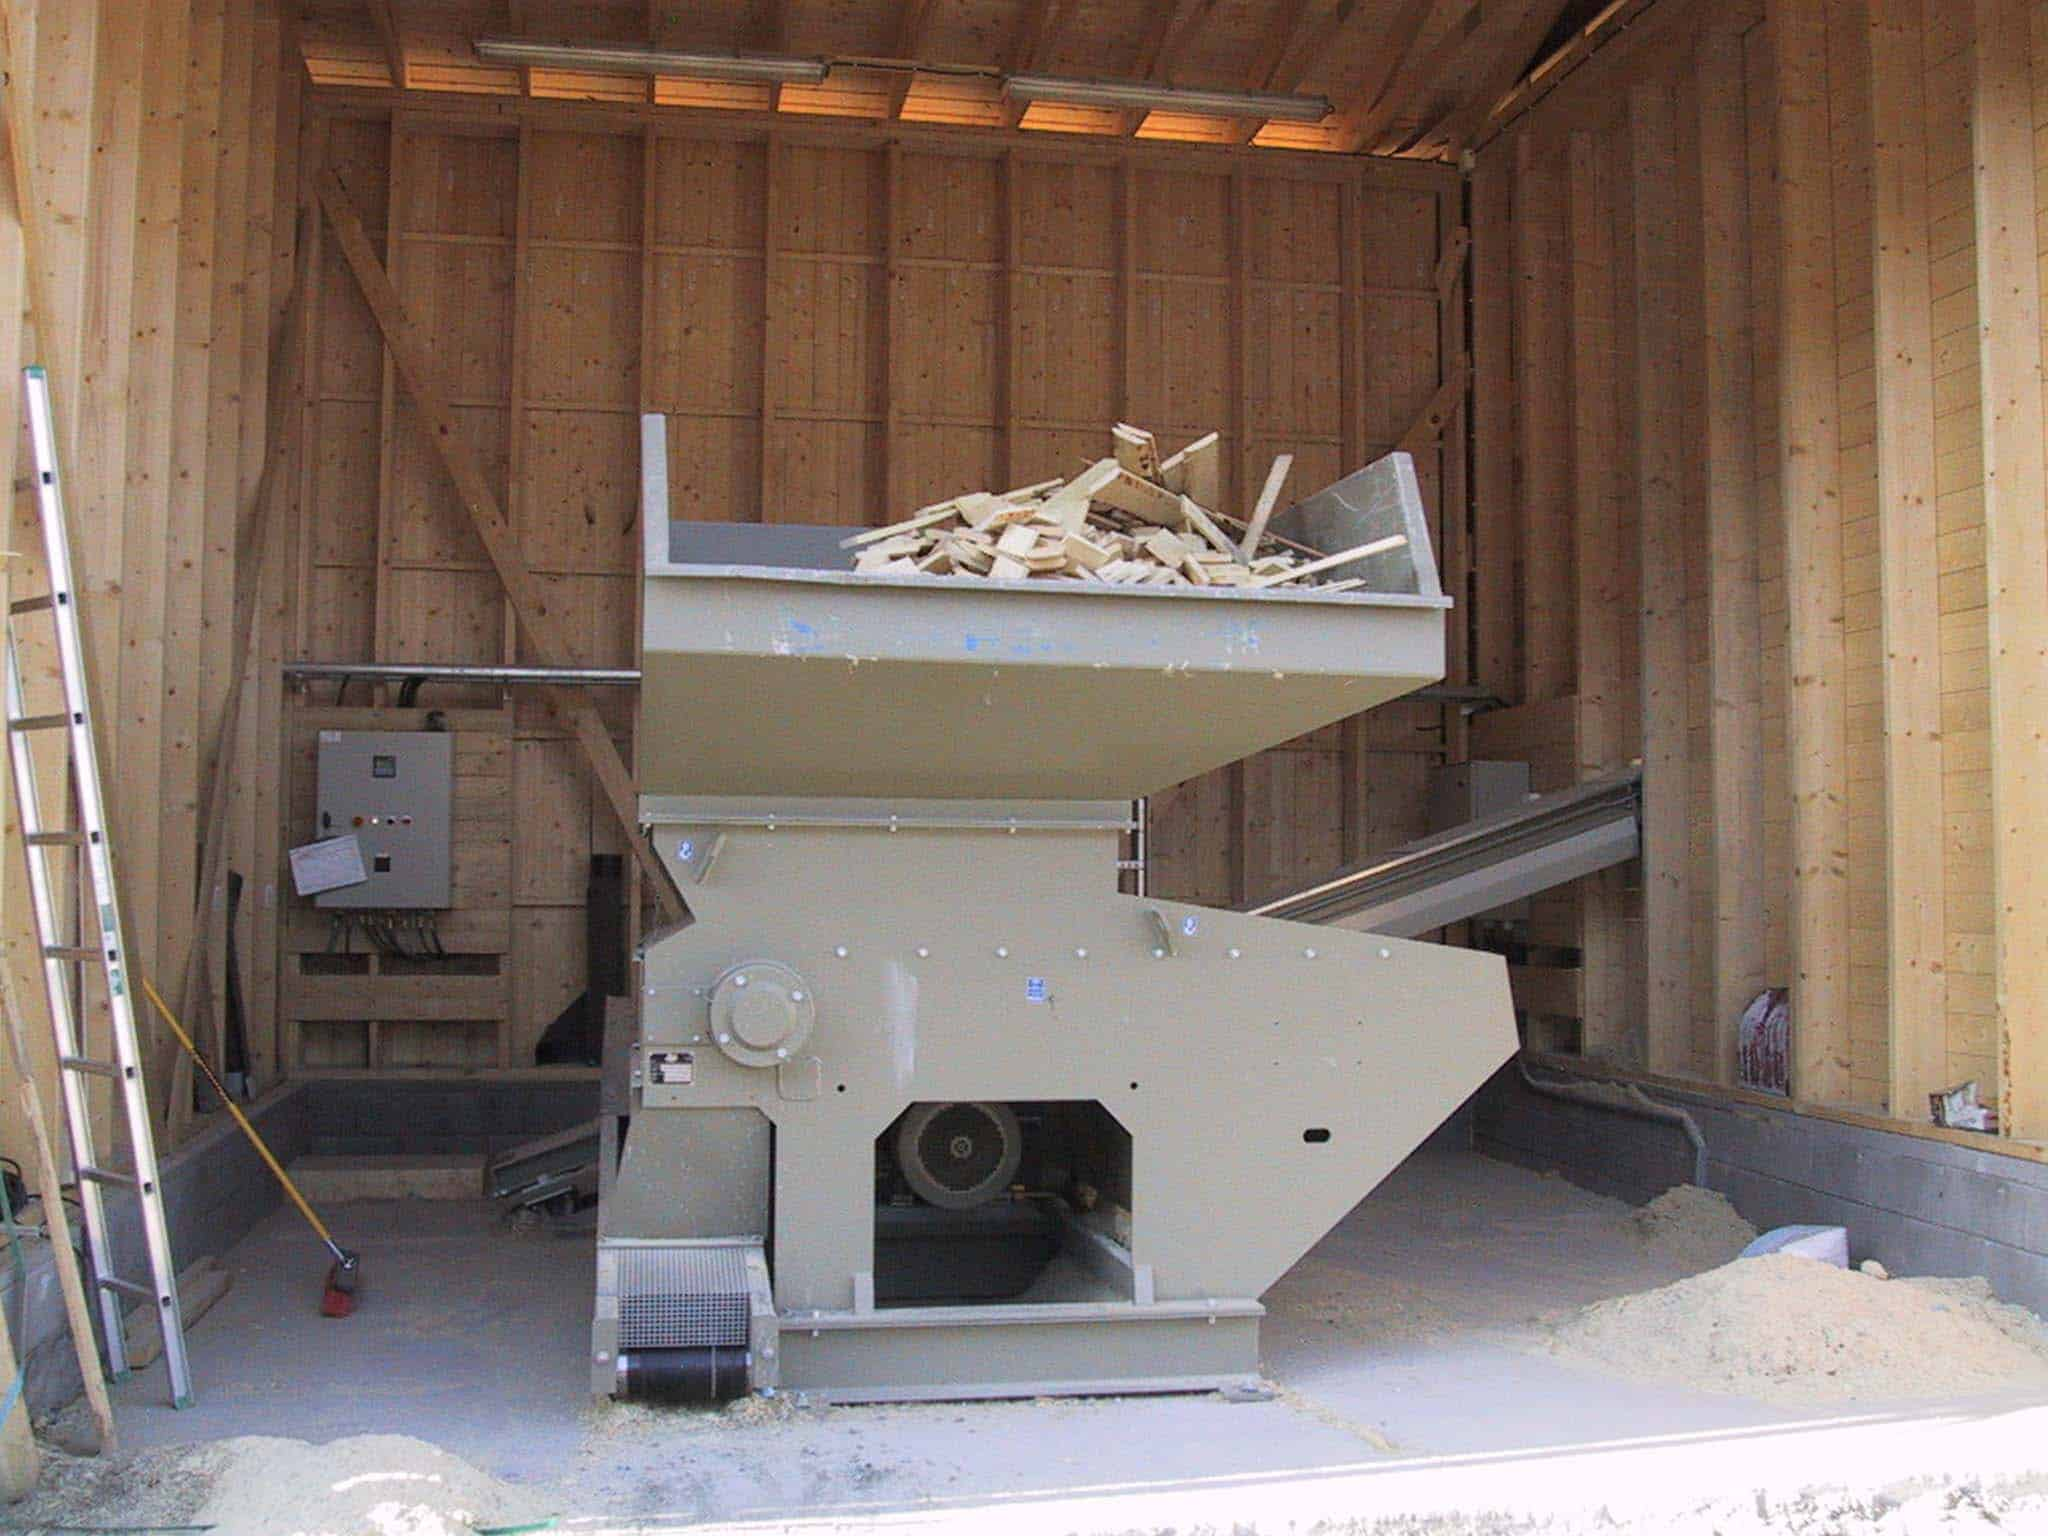 Scanhugger wood waste recycling shredder in barn loaded with wood